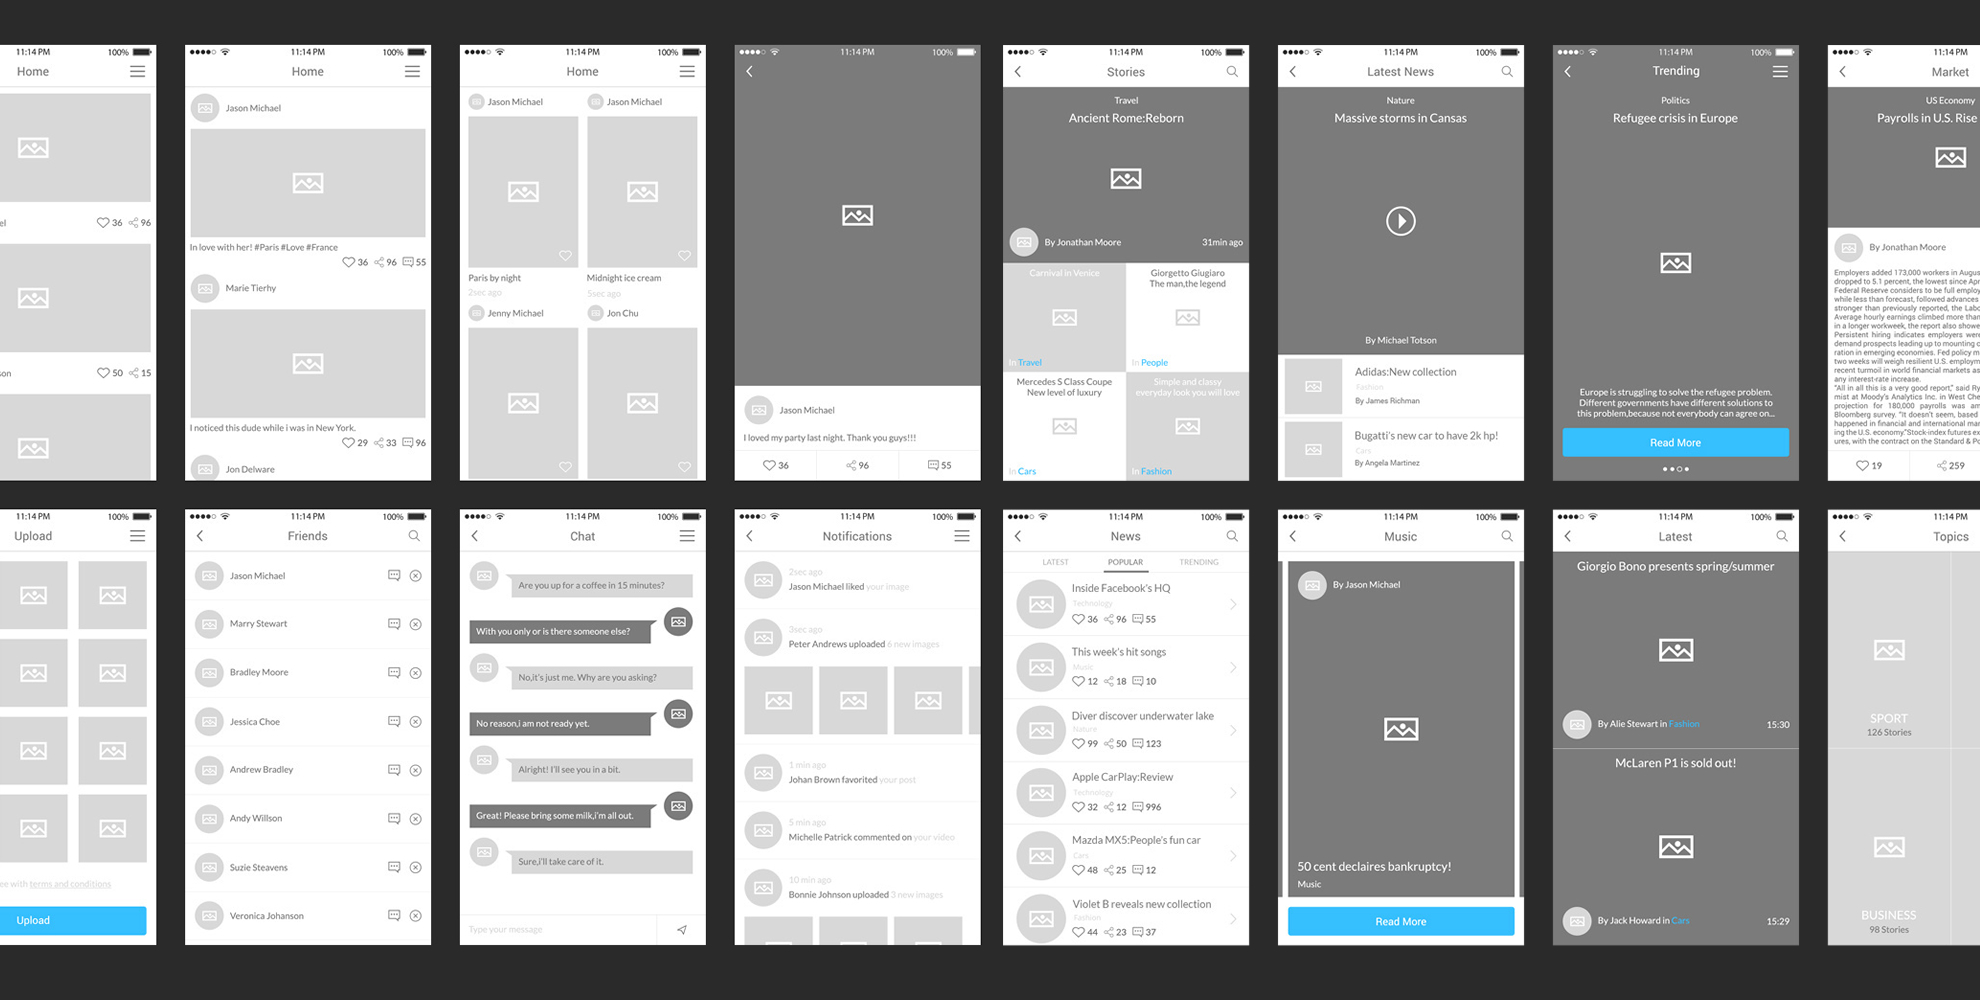 Summing up this year's new UI/UX trends